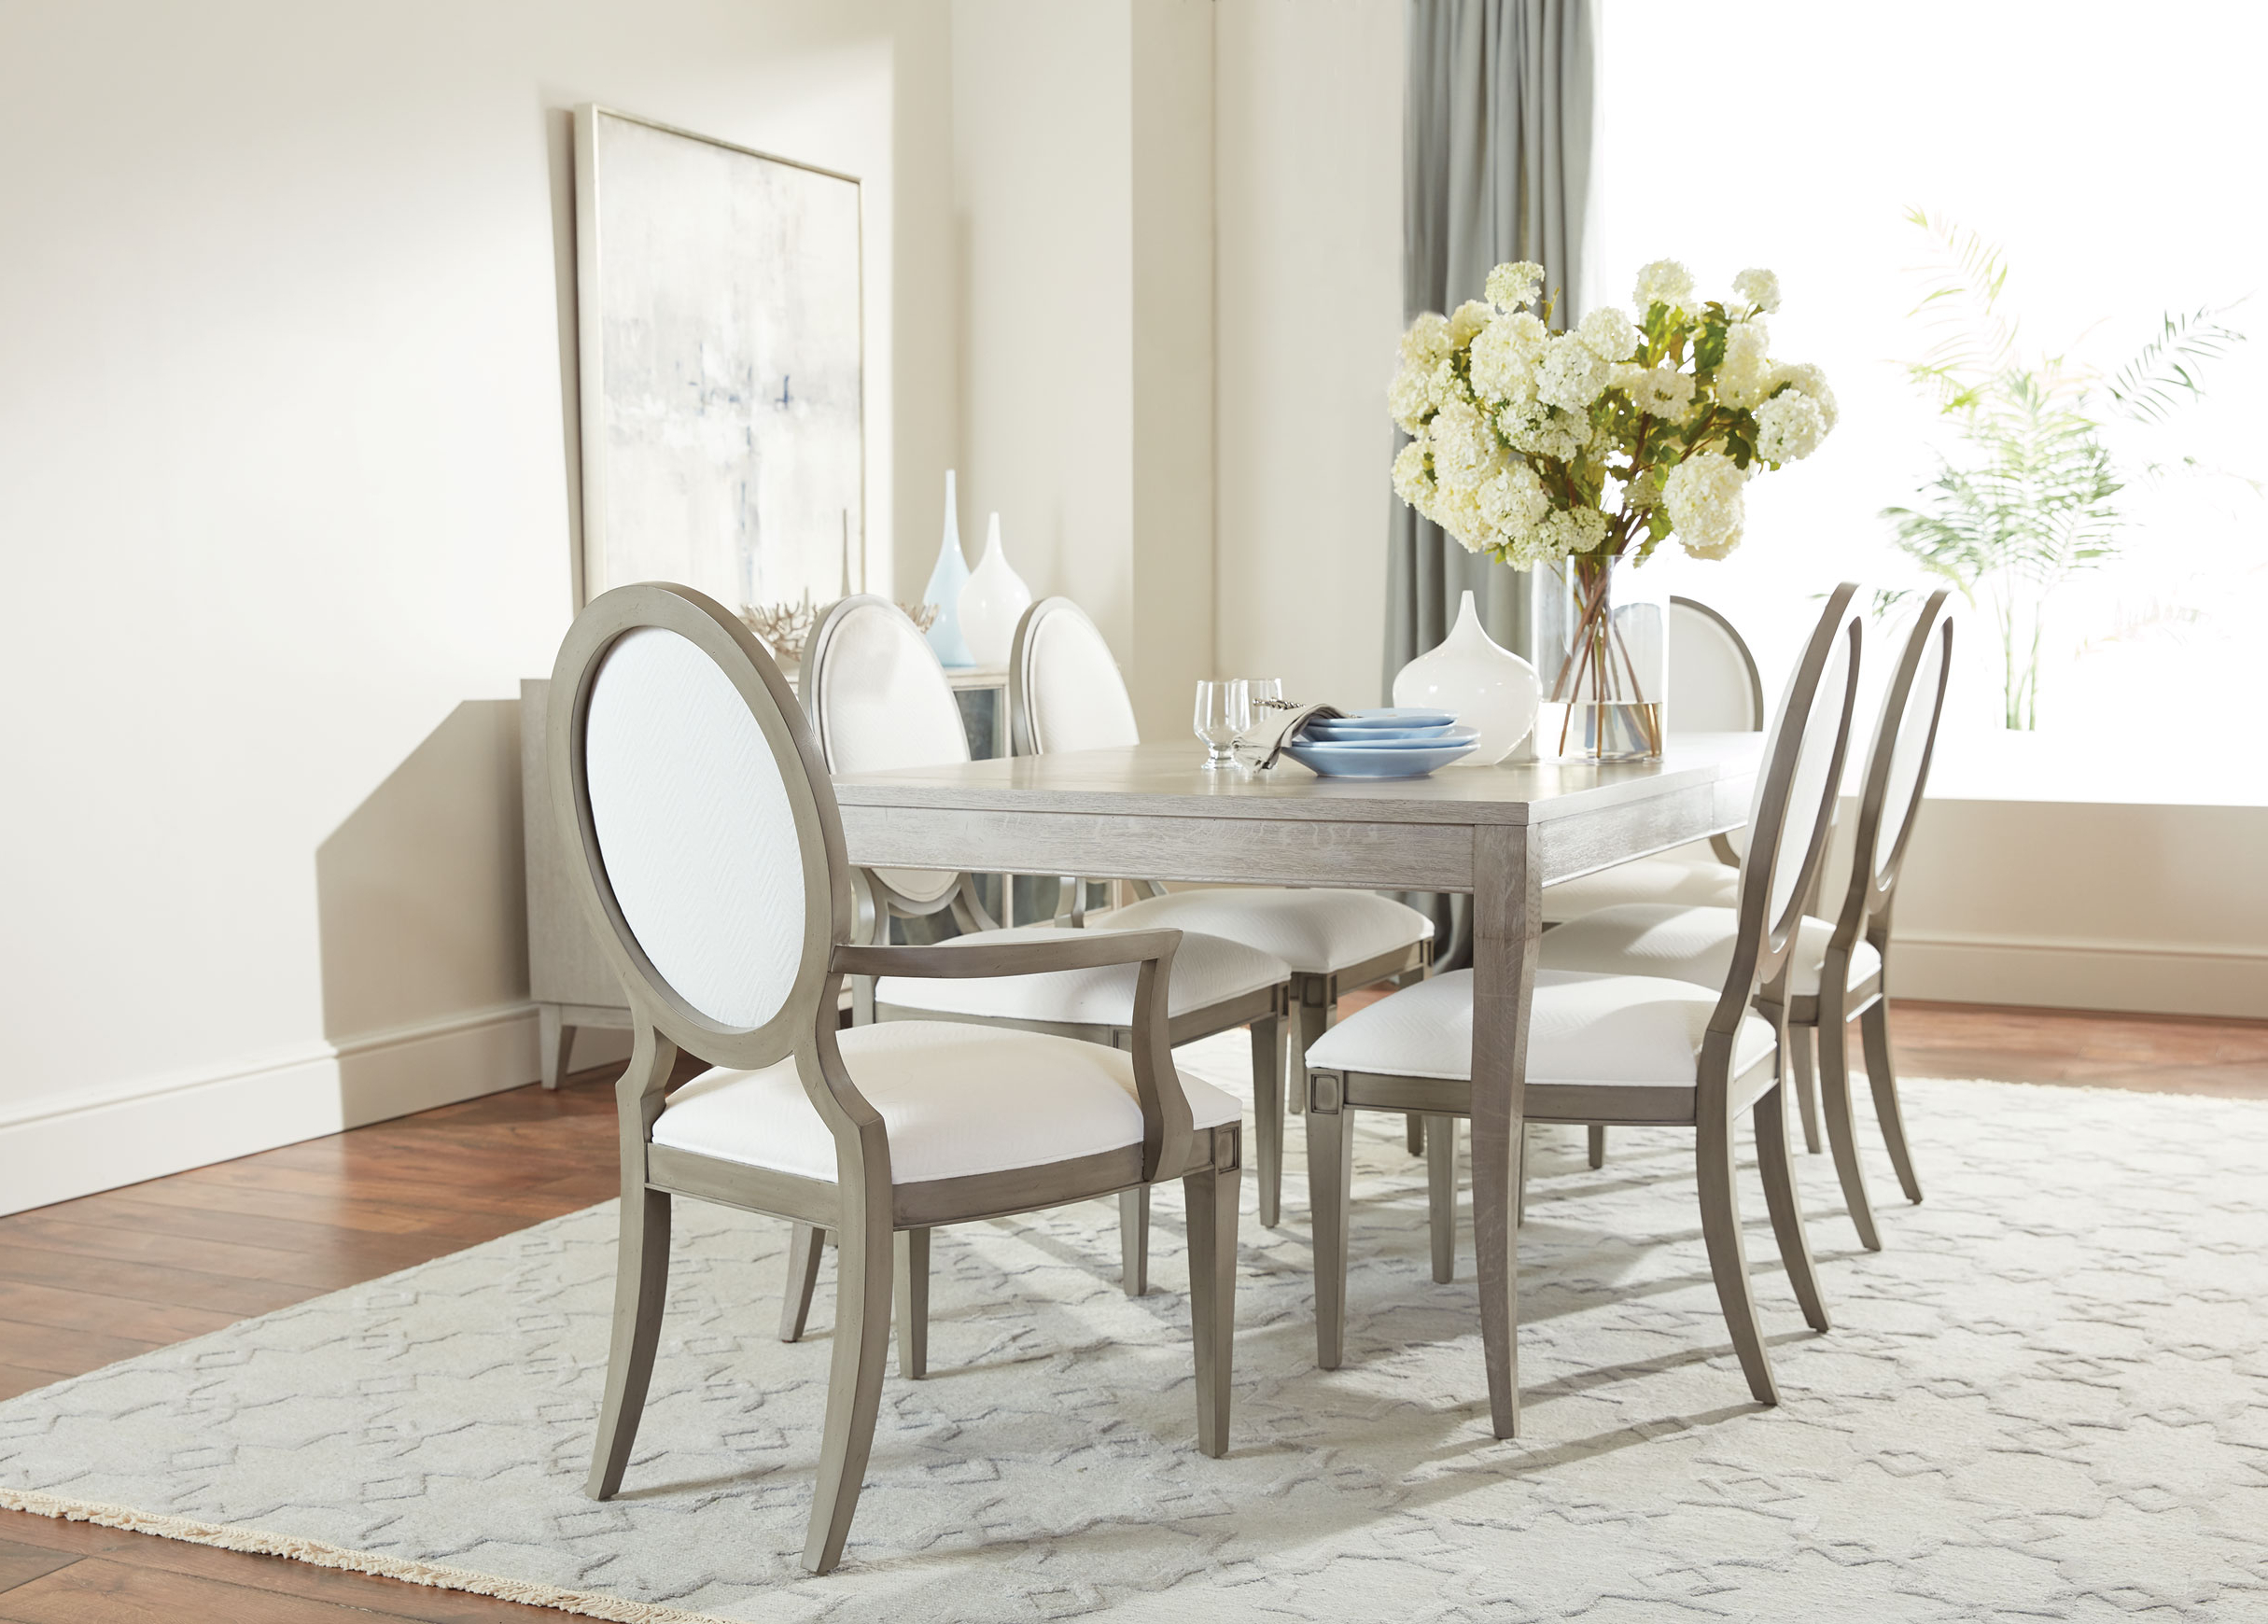 Ethan Allen Within Artefac Contemporary Casual Dining Tables (View 17 of 30)